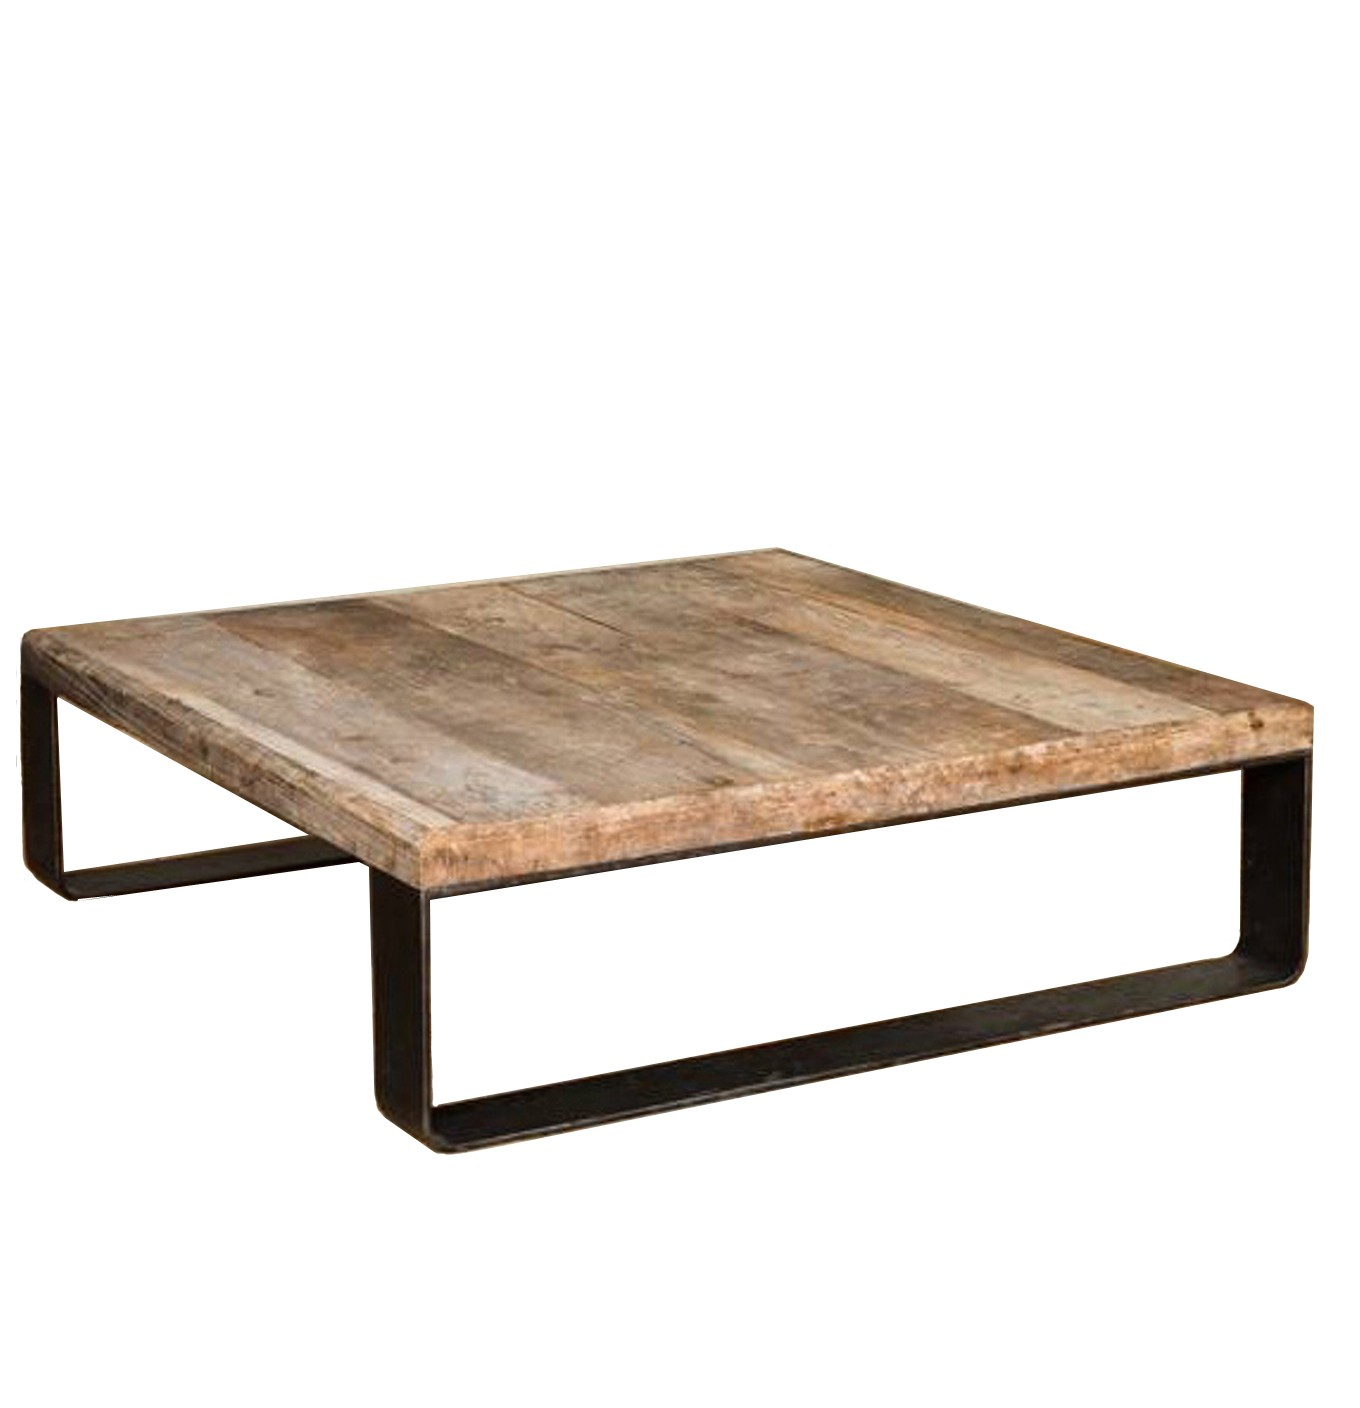 Table basse belfast 120 x 120 cm for Table carree 120 cm